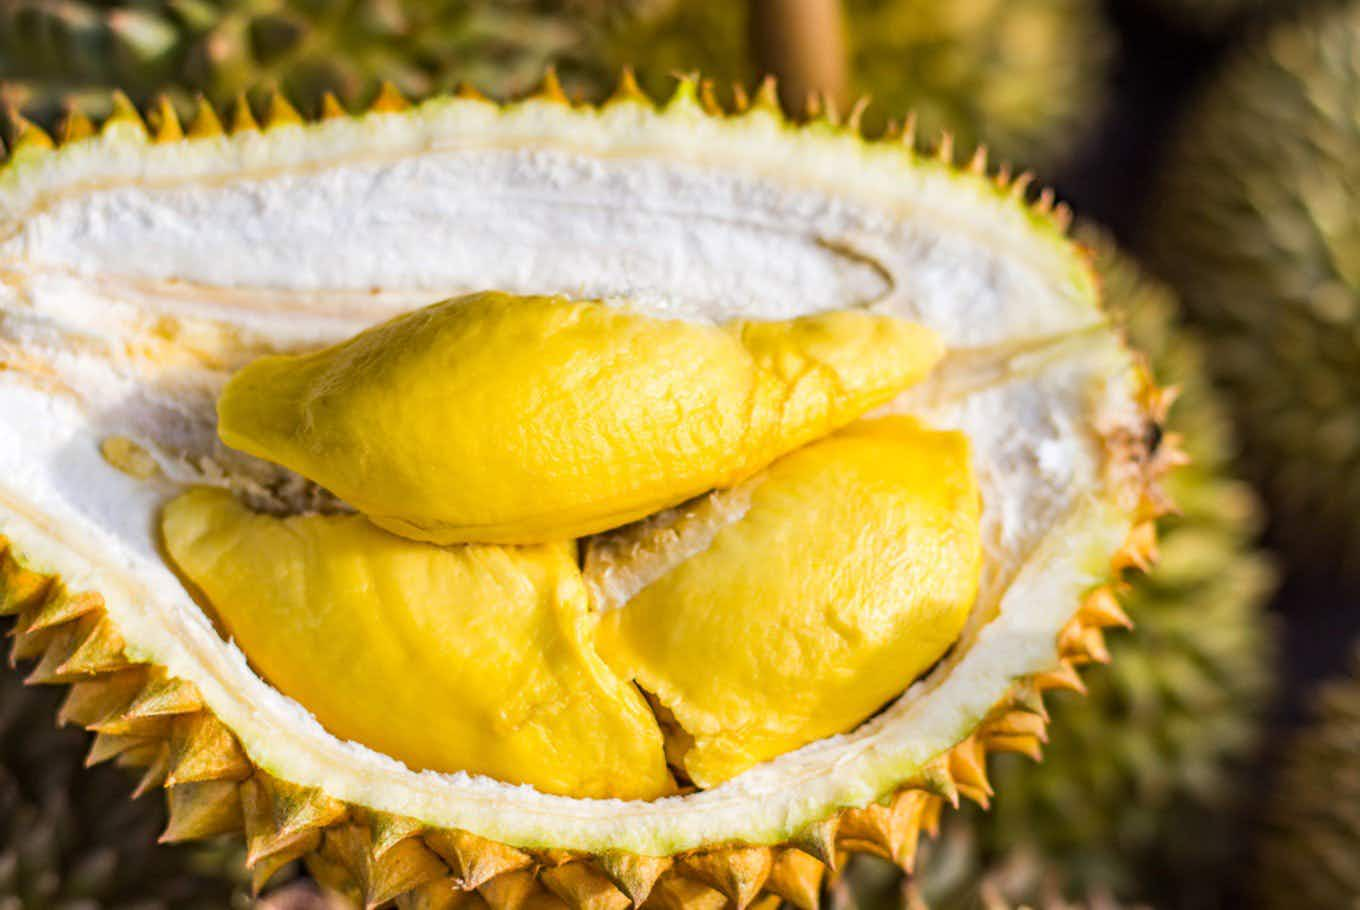 Melbourne is hosting a festival dedicated to the super smelly durian fruit